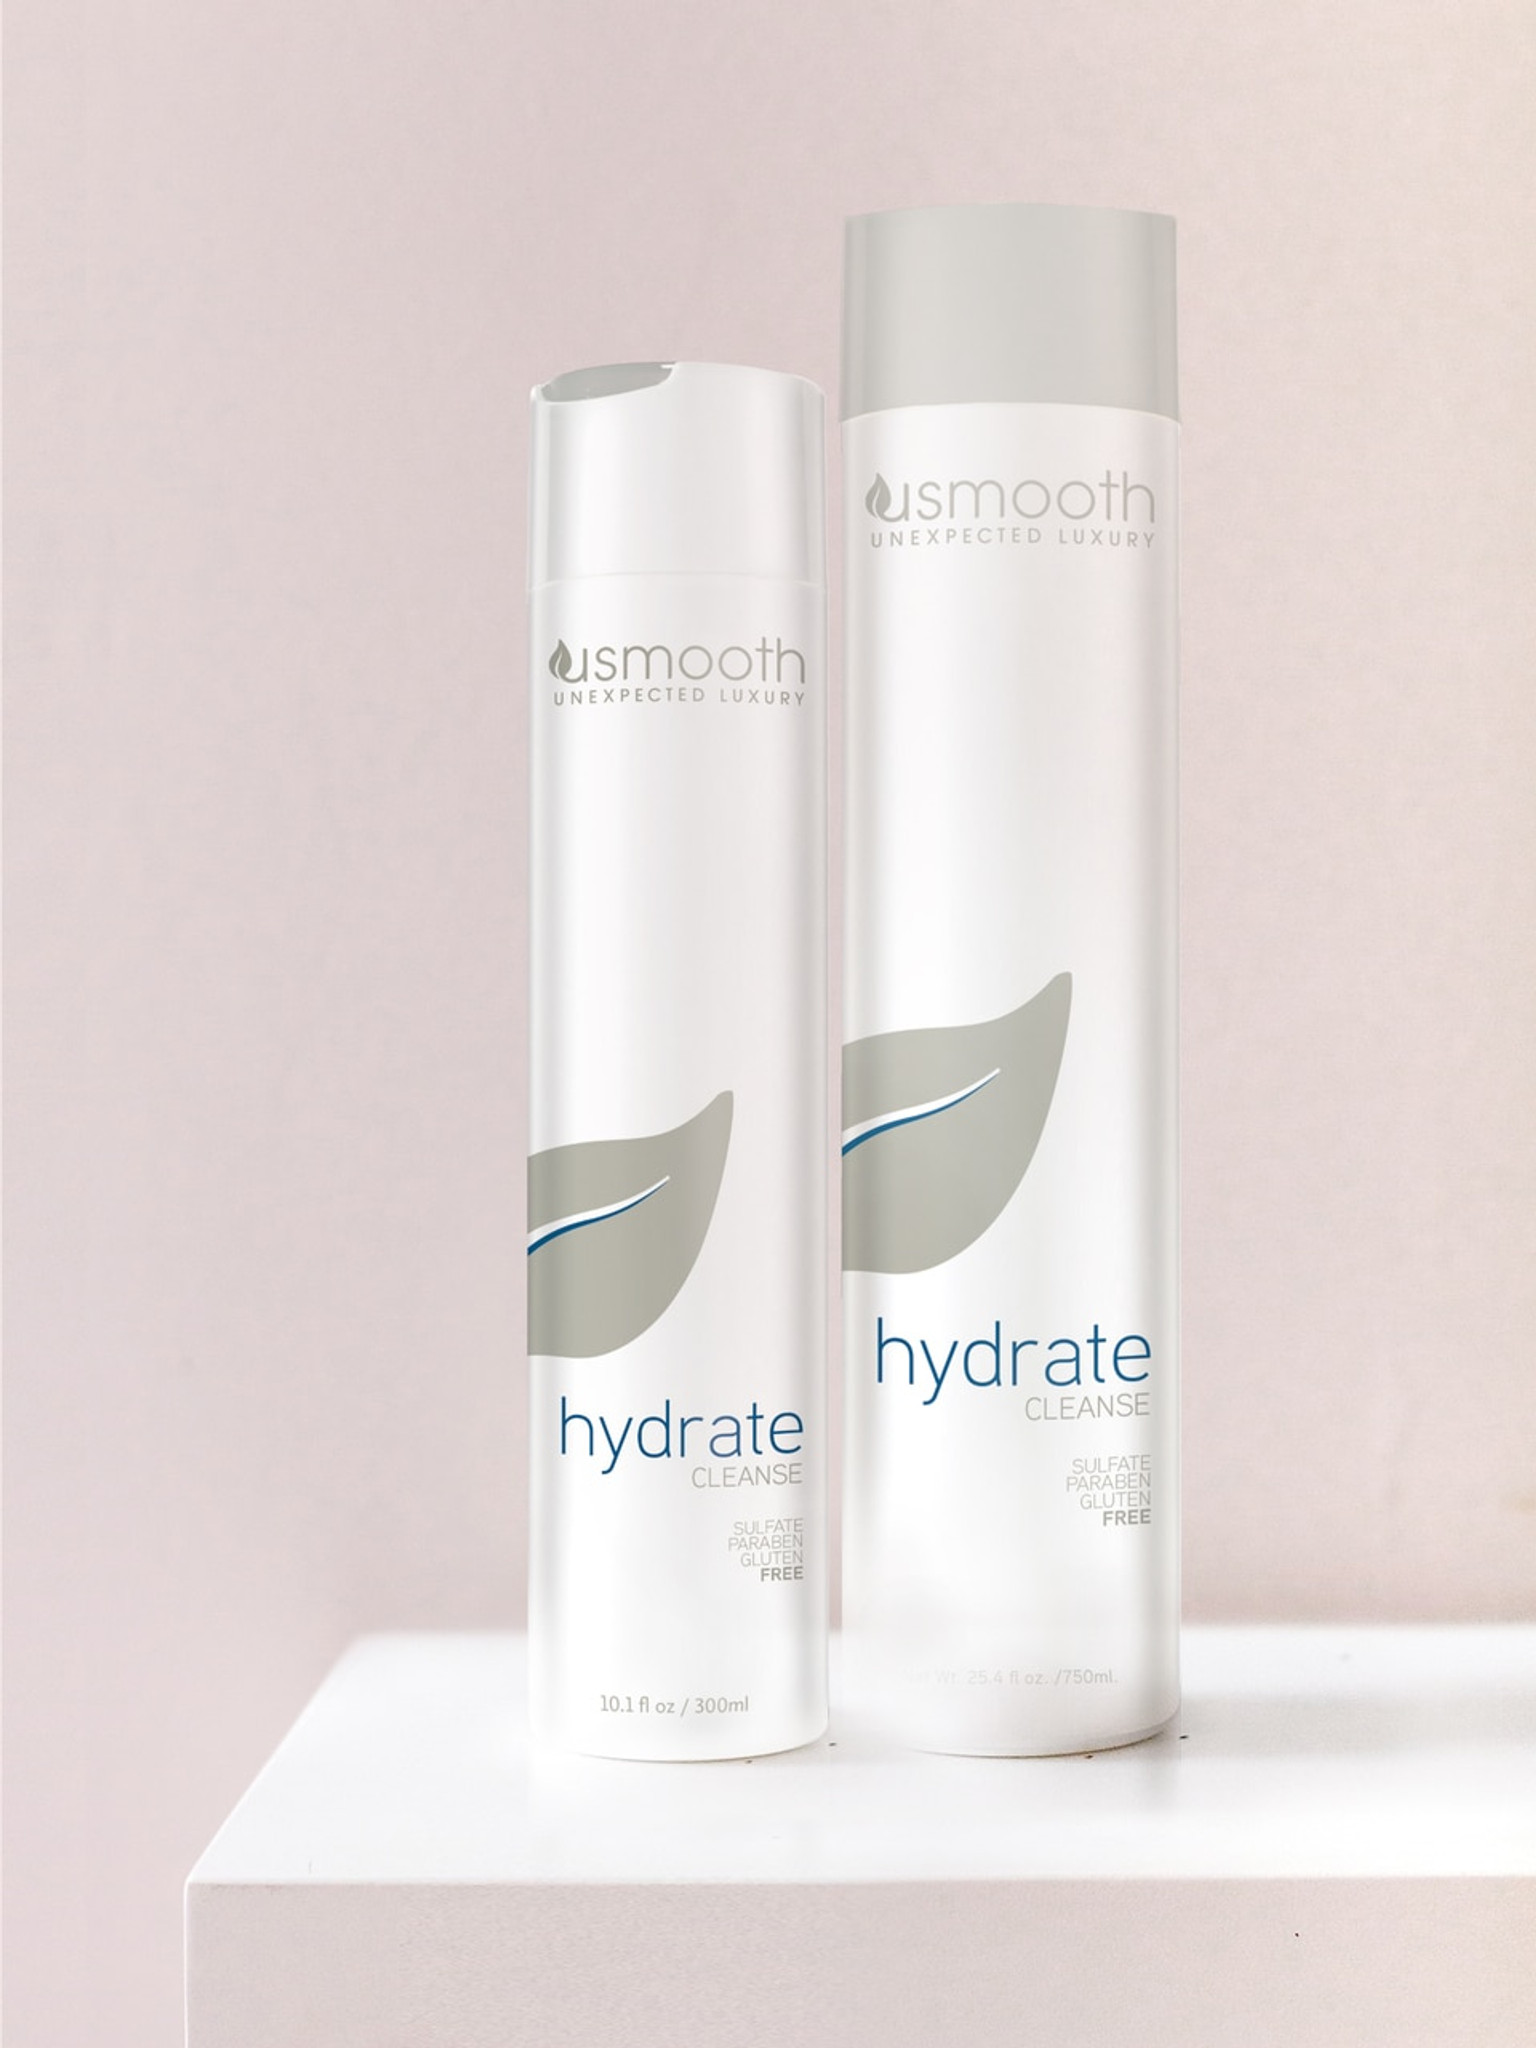 Hydrate Cleanse